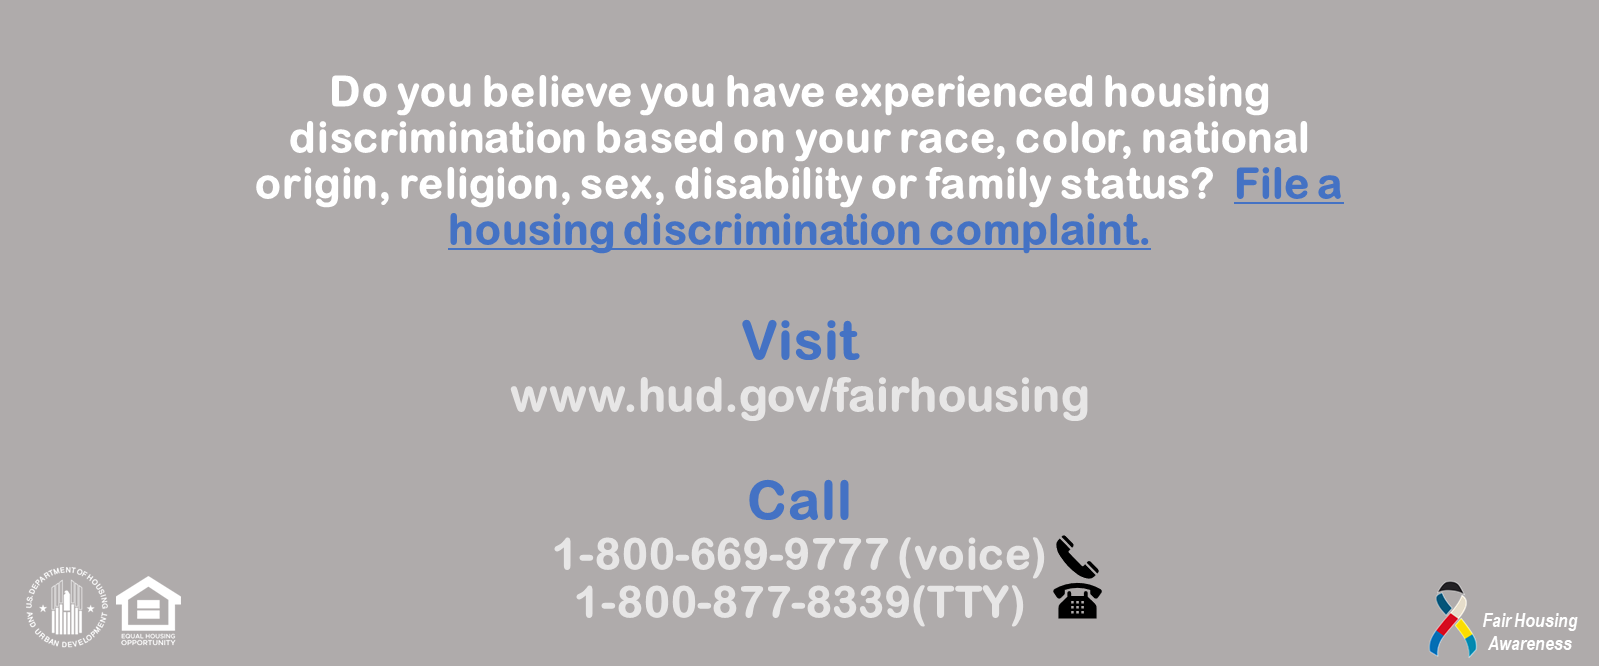 [Do you believe you have experienced housing discrimination based on your race, color, national origin, religion, sex, disability or family status?]. HUD Photo